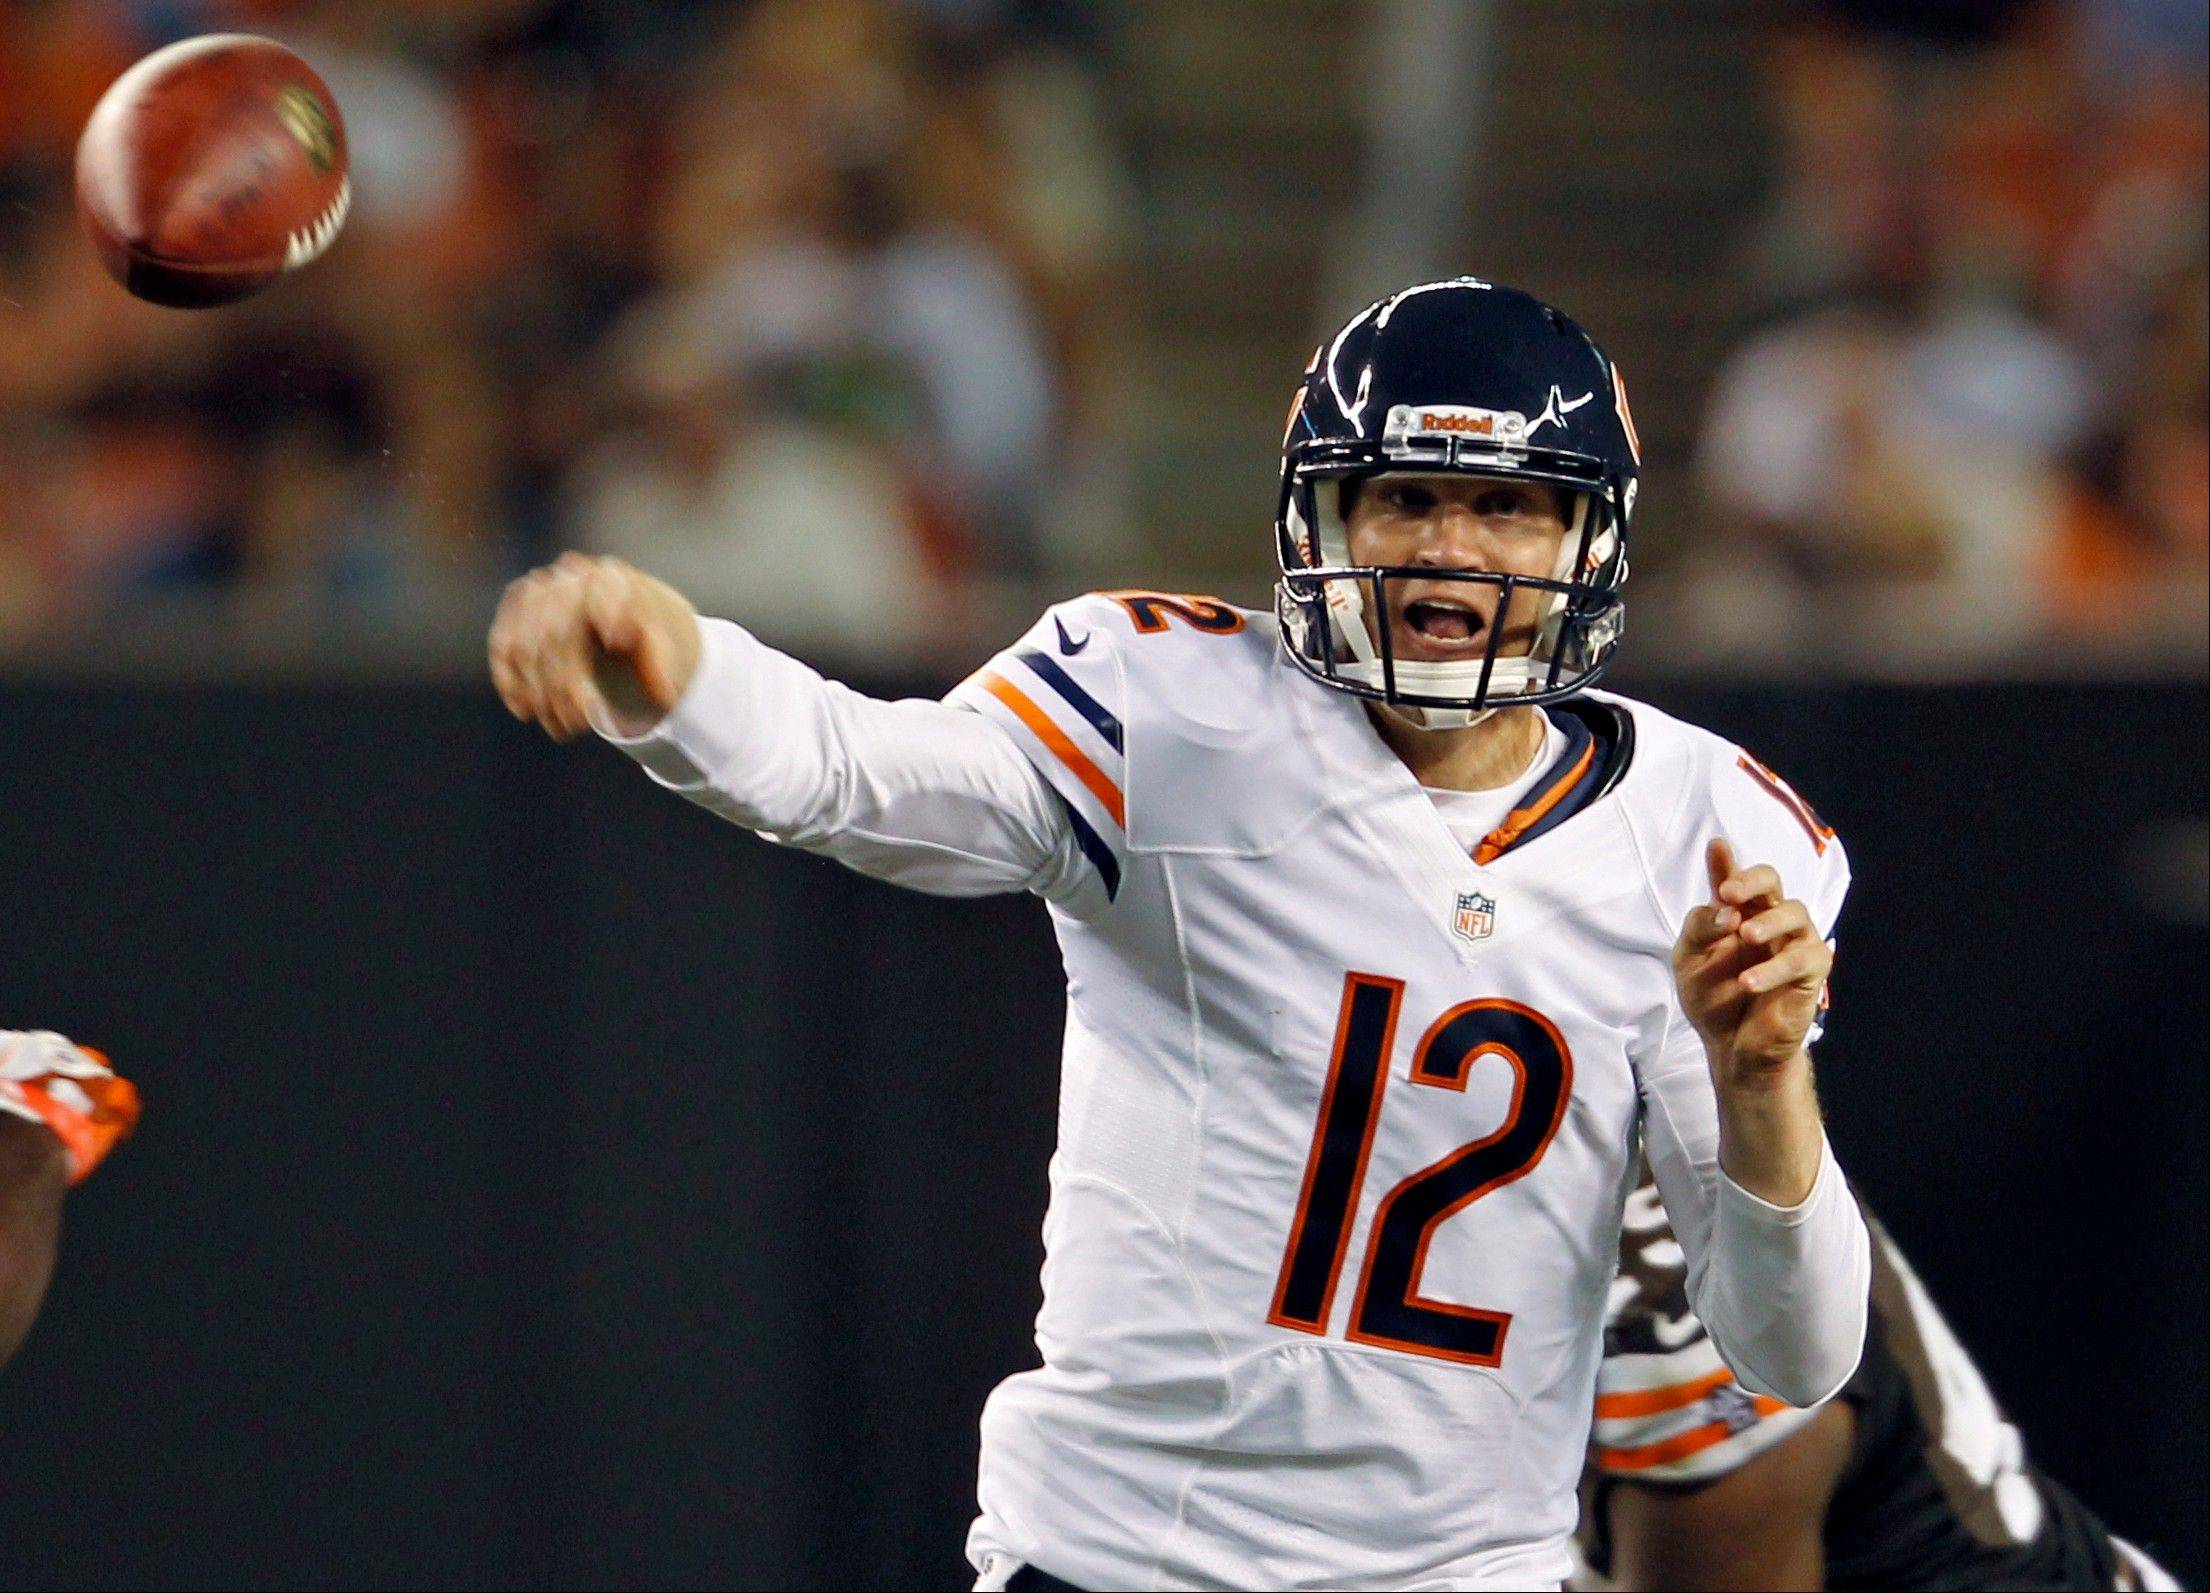 Chicago Bears quarterback Josh McCown (12) throws a pass against the Cleveland Browns in the third quarter of a preseason NFL football game, Thursday, Aug. 30, 2012, in Cleveland. (AP Photo/Ron Schwane)